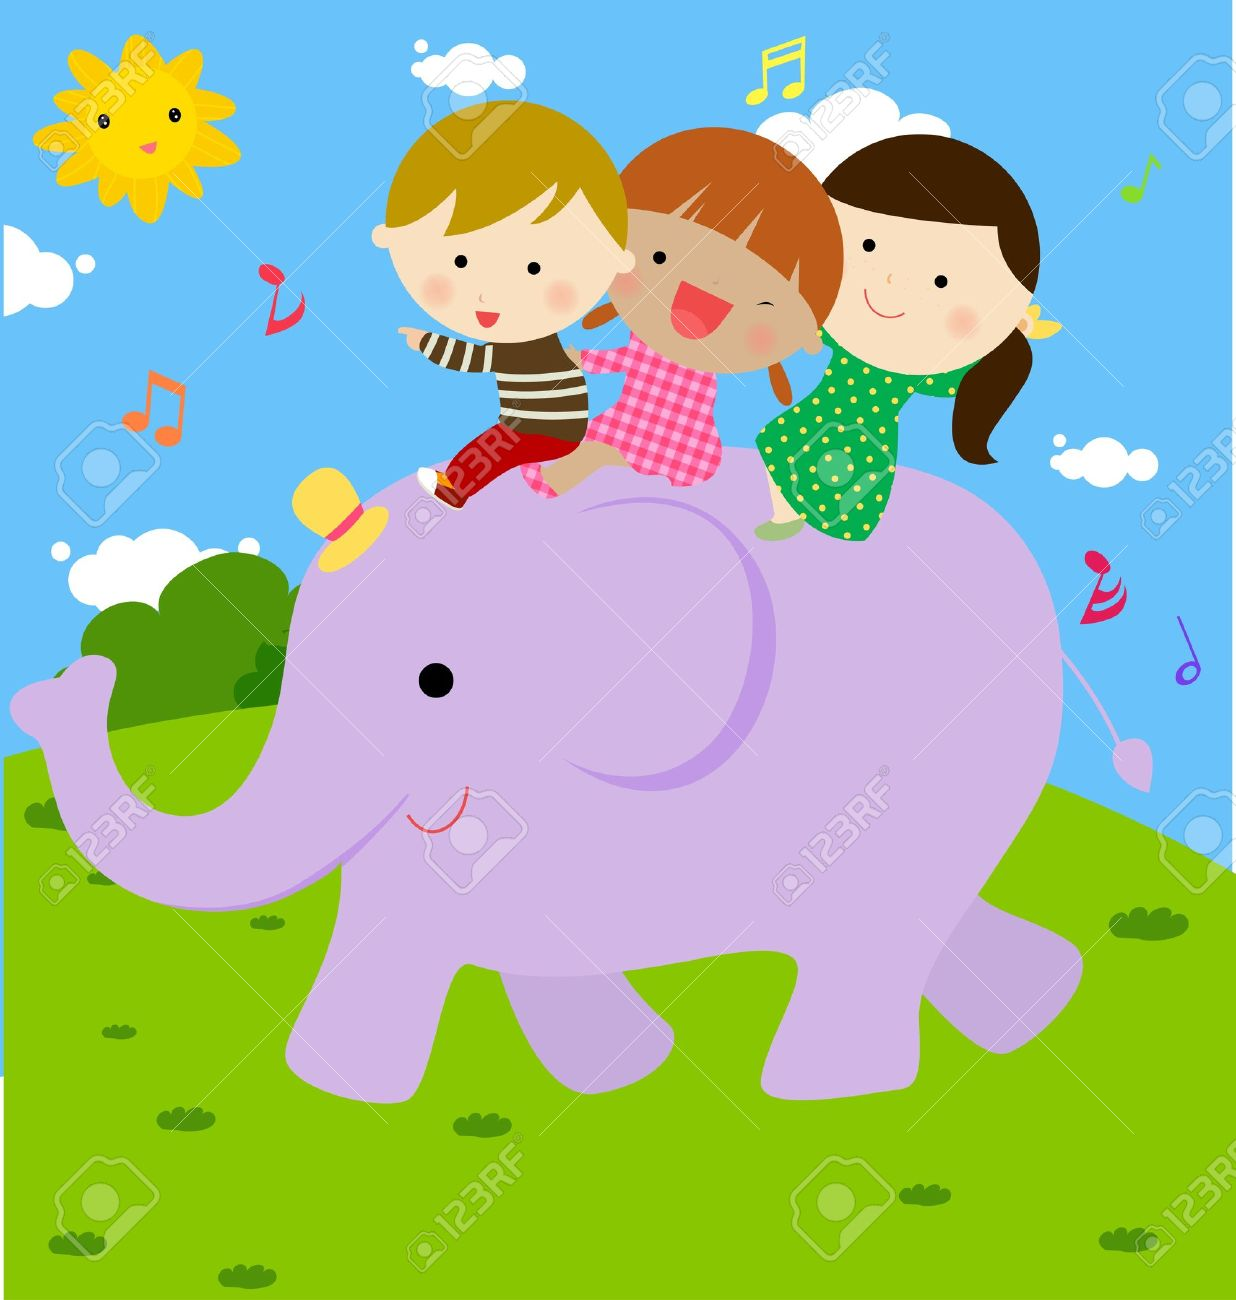 Children On Elephant Clipart.